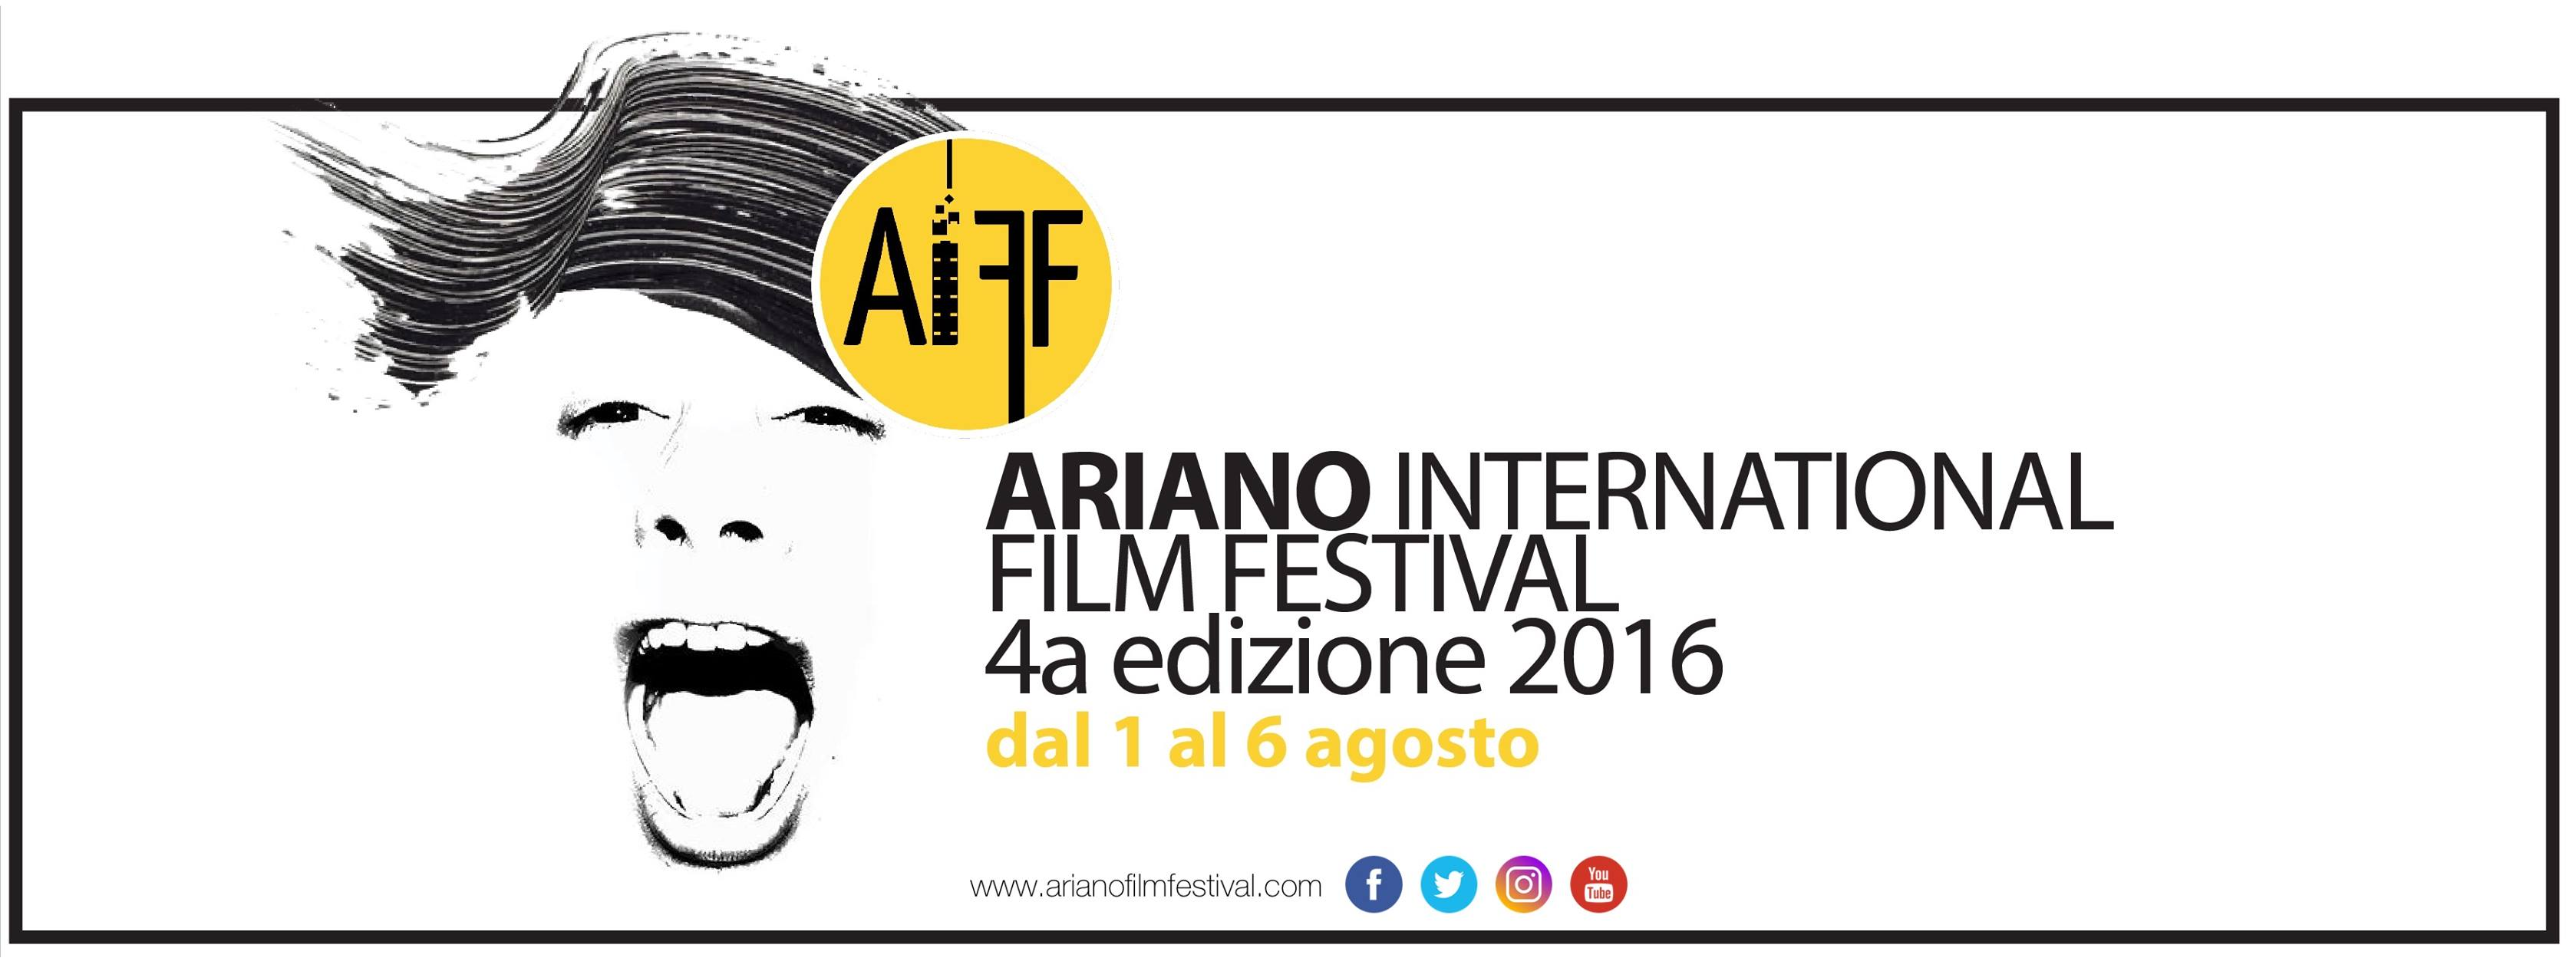 Ariano International Film Festival 2016